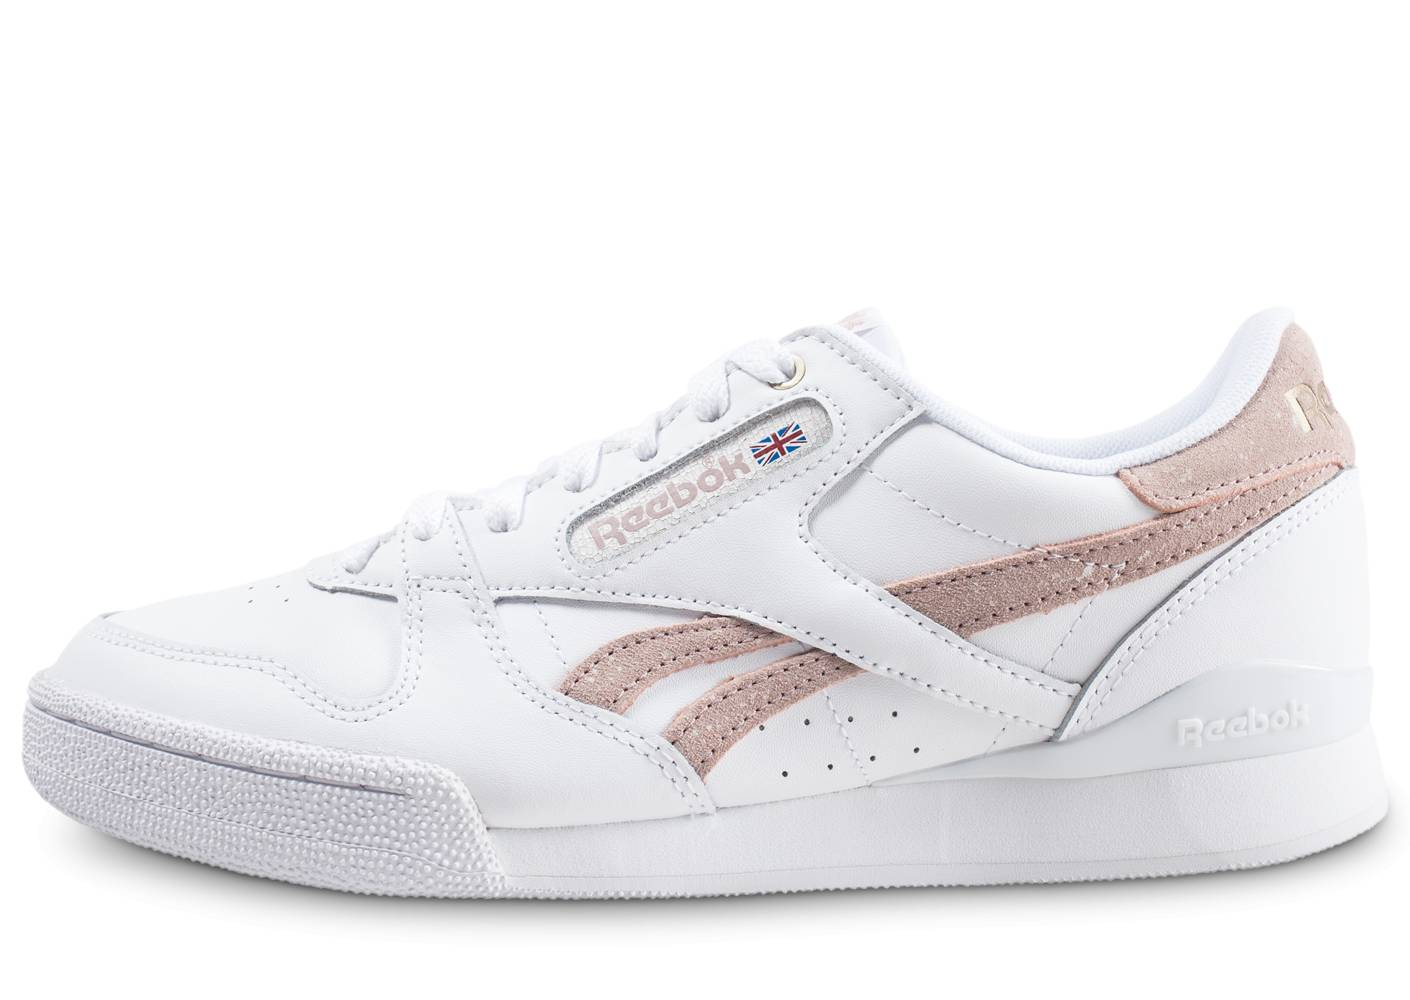 Reebok Homme Phase 1 Pro X Montana Cans Blanche Et Rose Baskets